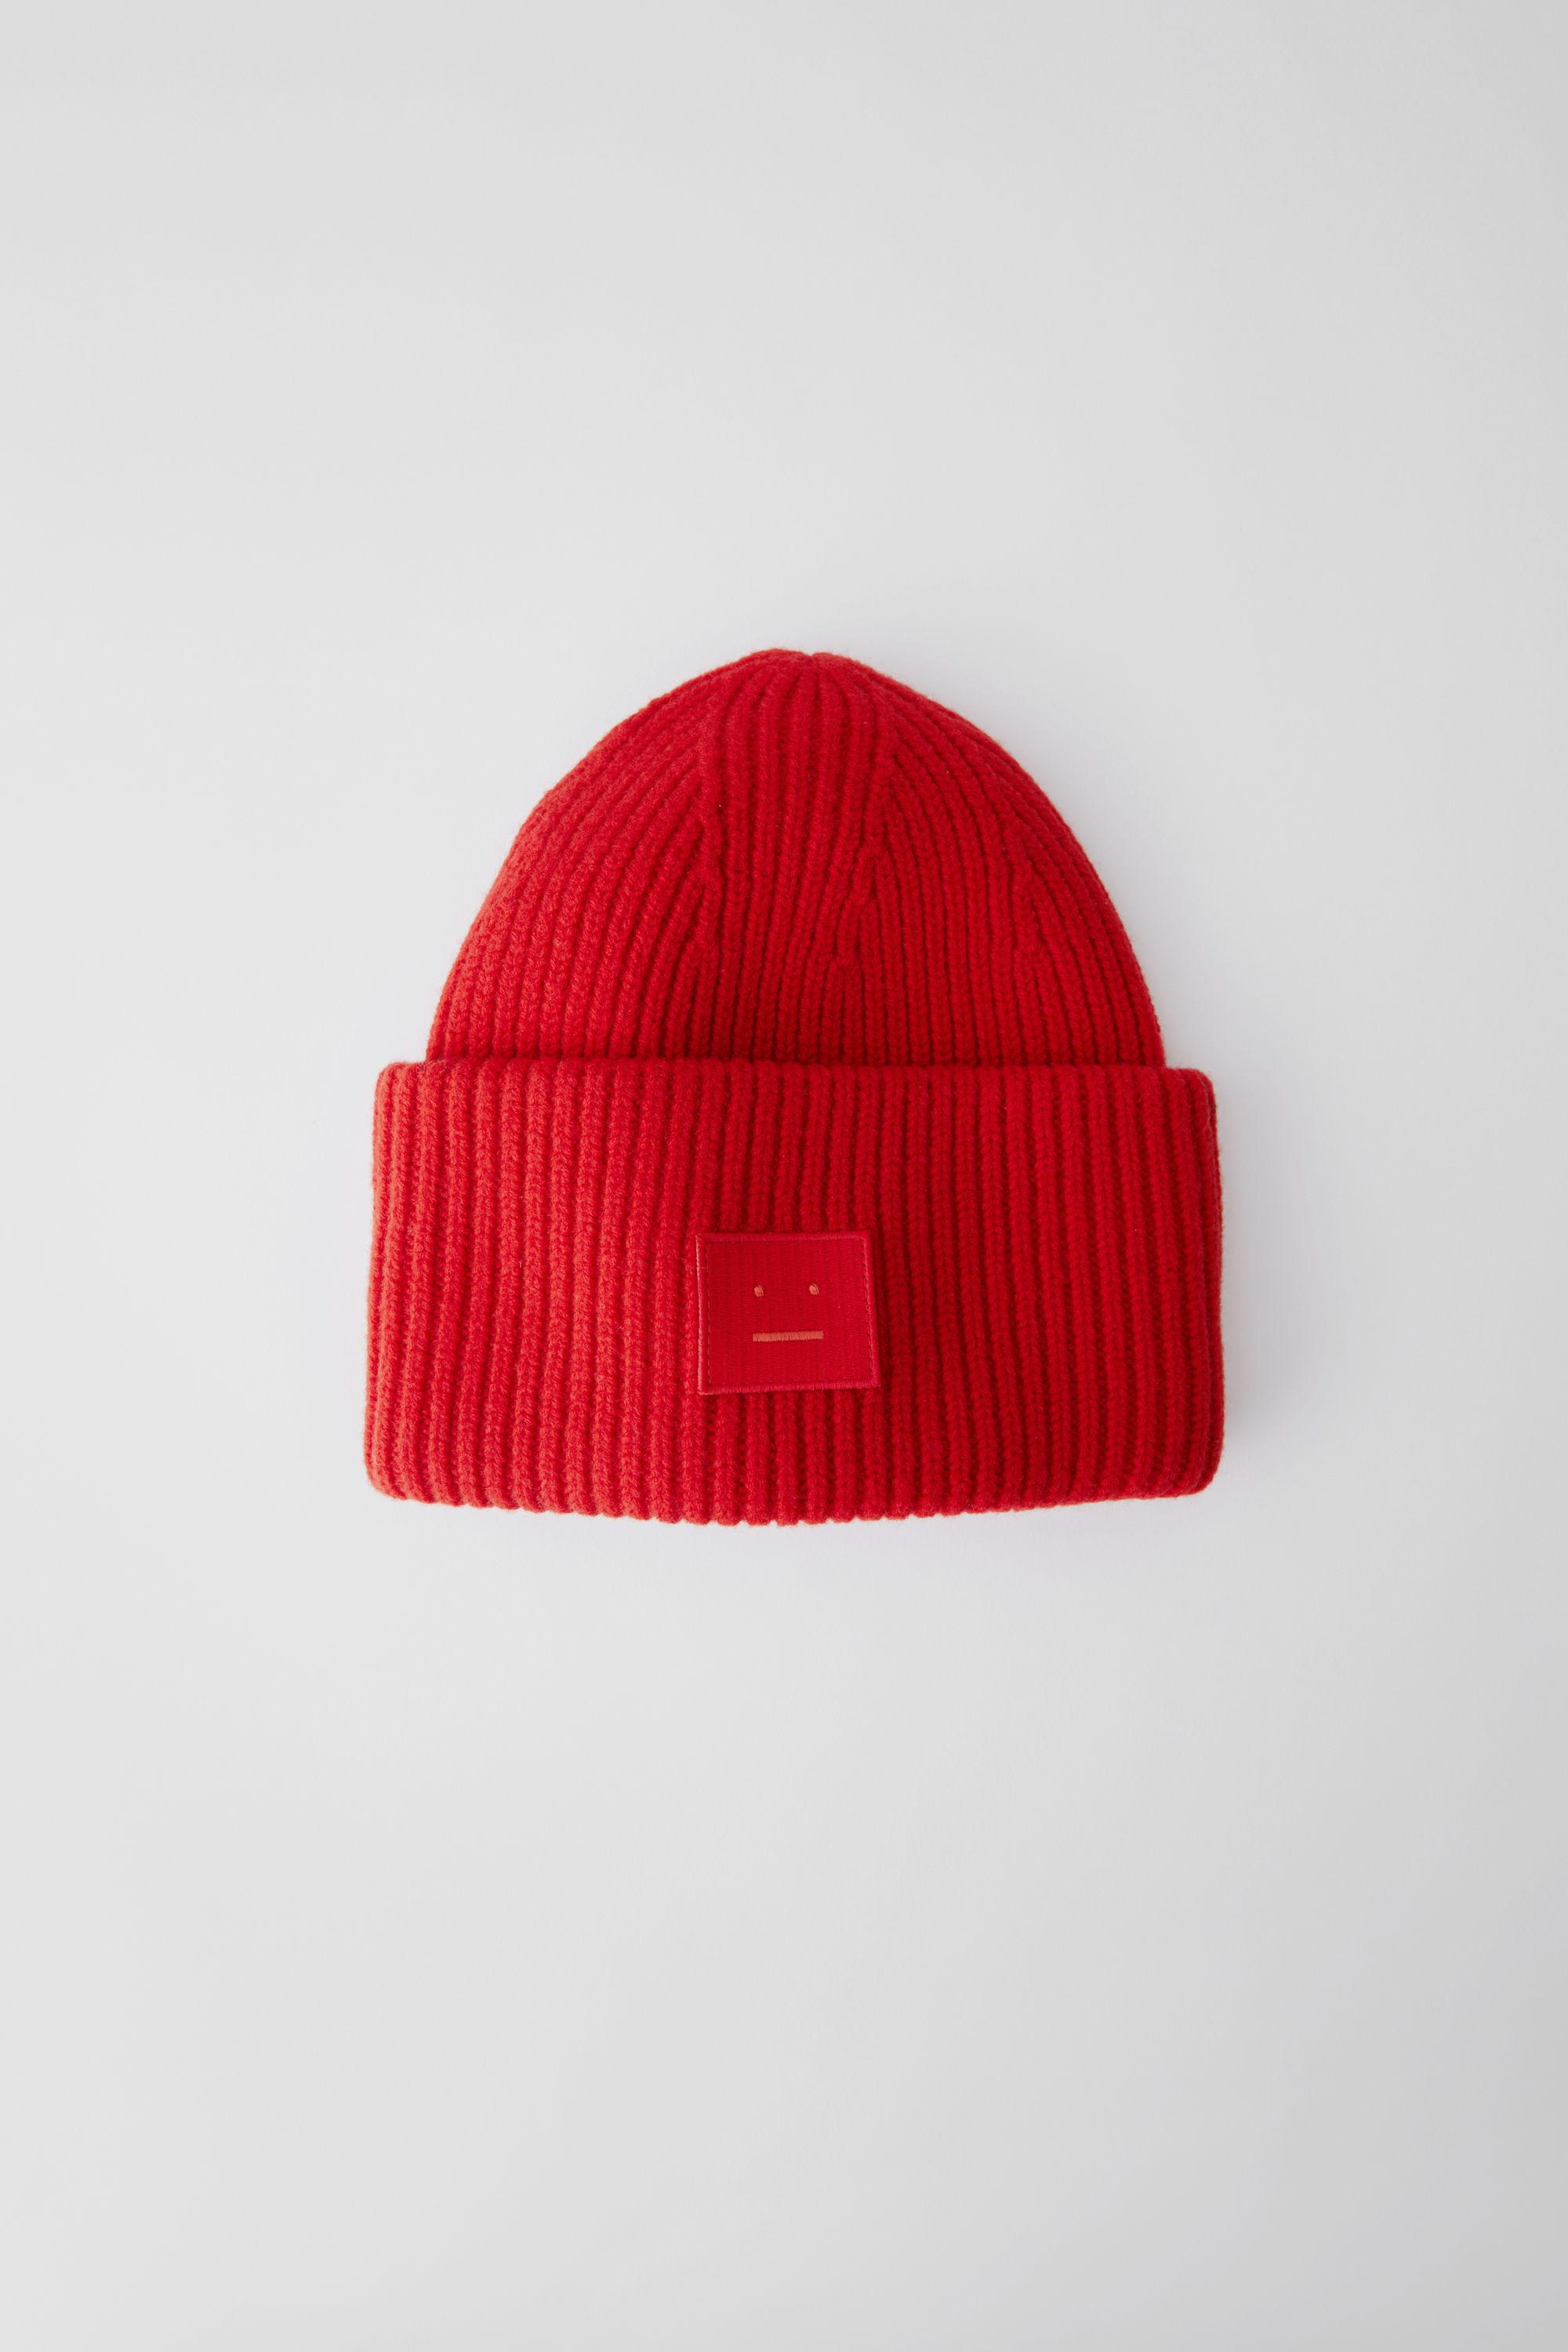 8df54a6b4ba Lyst - Acne Studios Pansy Face Tomato Red Ribbed Beanie Hat in Red ...